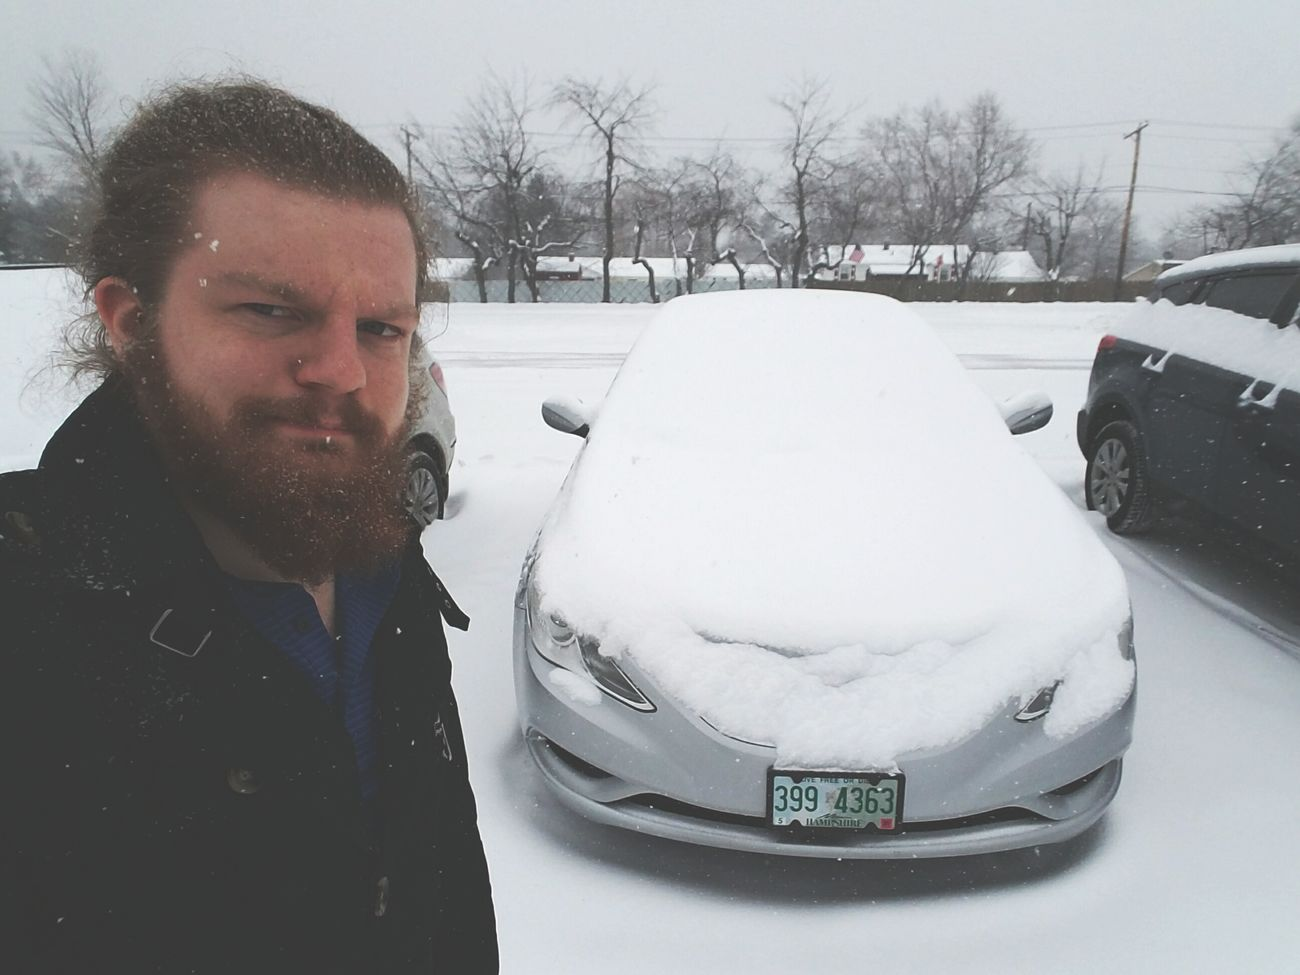 Winter Snow Portrait Business Finance And Industry Cold Temperature Headshot Front View Beard Warm Clothing Only Men People One Person Outdoors Adults Only Adult One Man Only Day